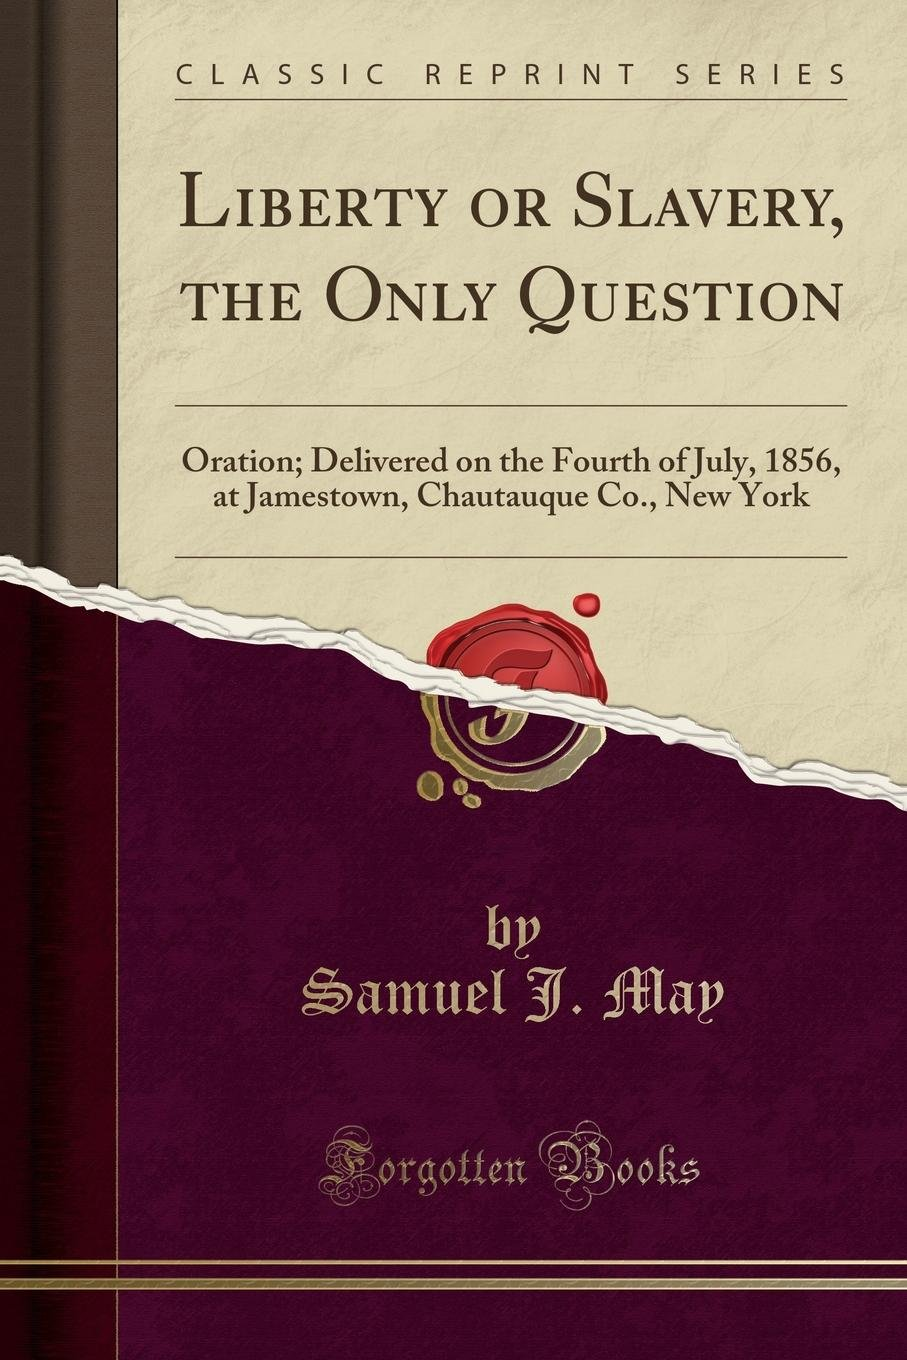 Download Liberty or Slavery, the Only Question: Oration; Delivered on the Fourth of July, 1856, at Jamestown, Chautauque Co., New York (Classic Reprint) ebook